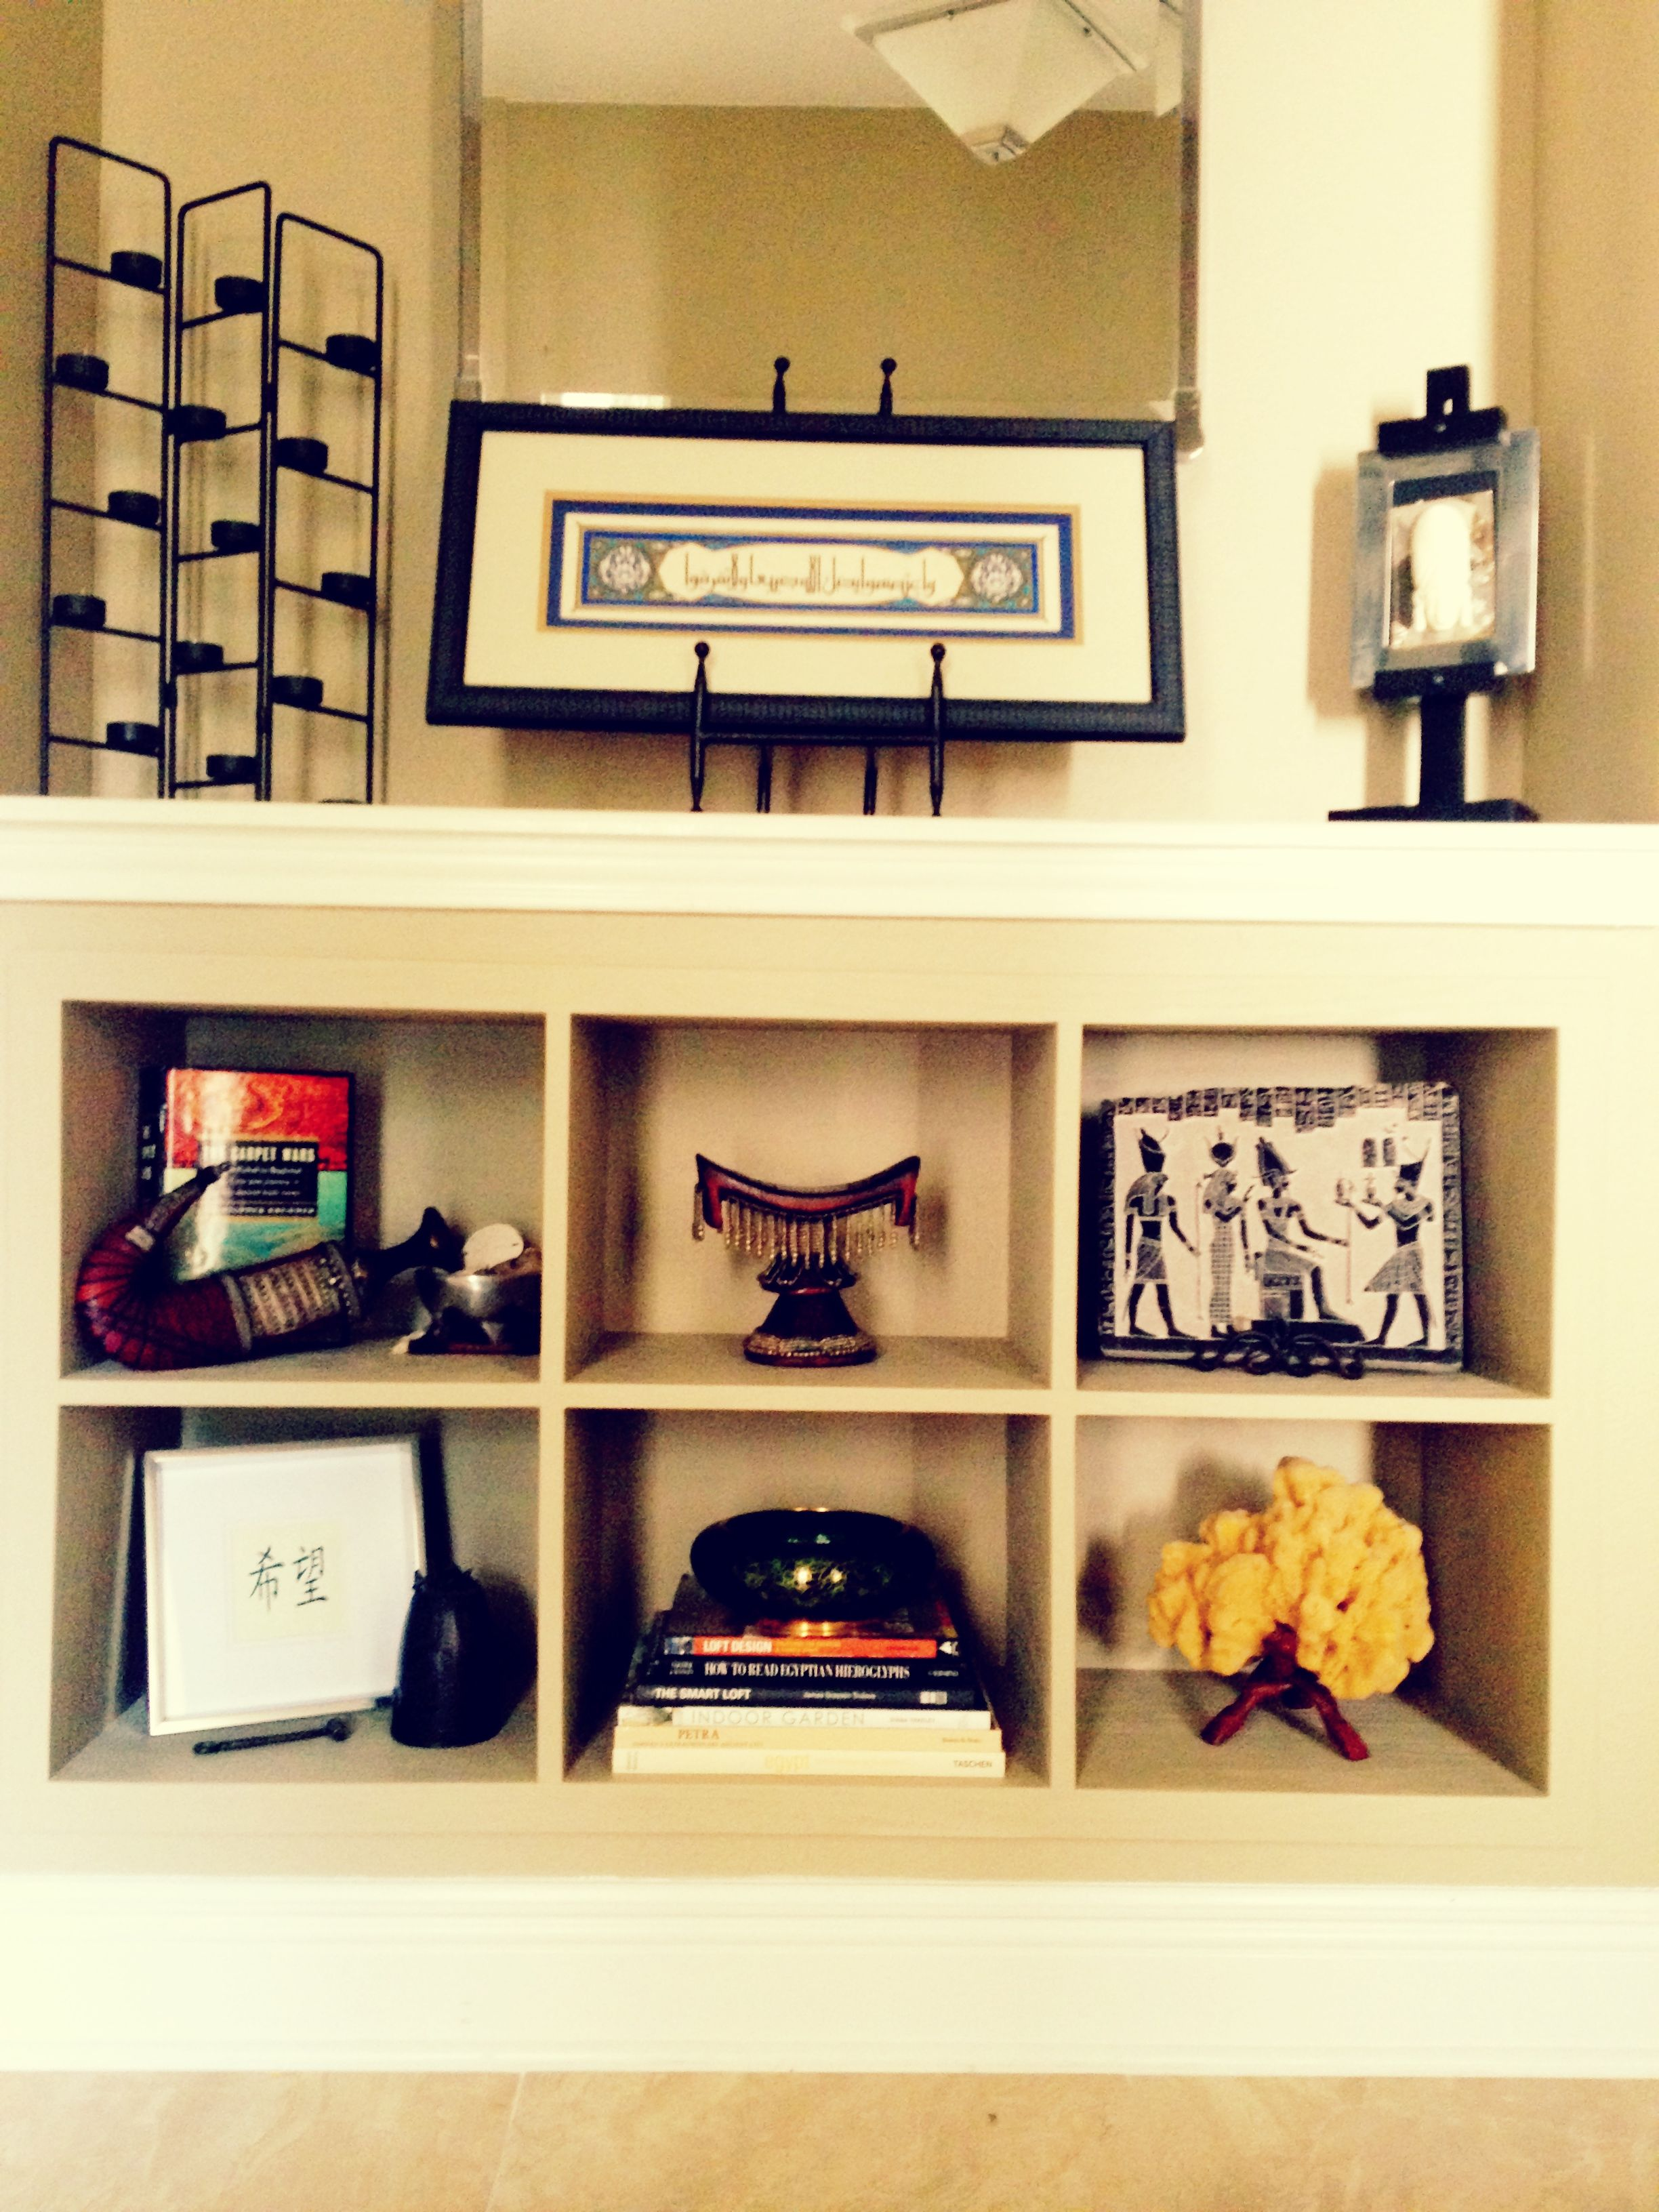 Bookshelf Decorating Ideas | Decorating, Organizing and Interiors